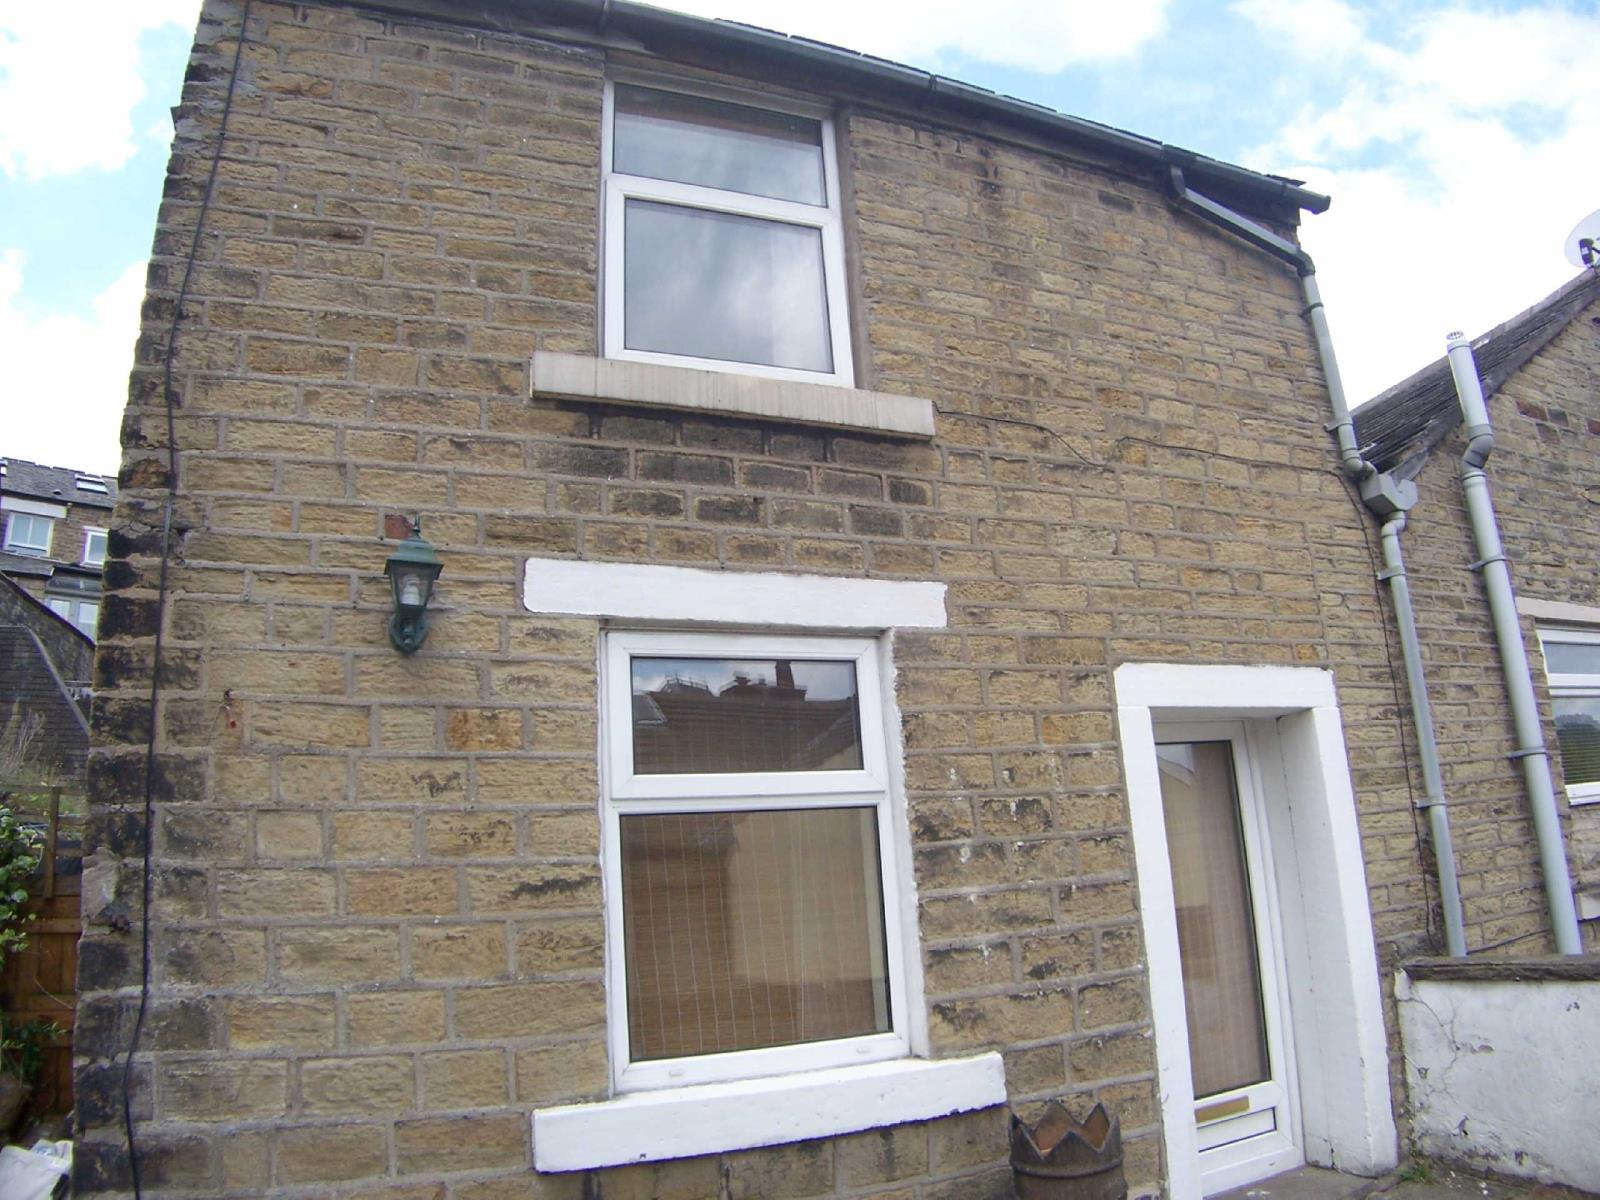 2 Bedrooms End Of Terrace House for sale in Victoria Street, Glossop, Derbyshire, SK13